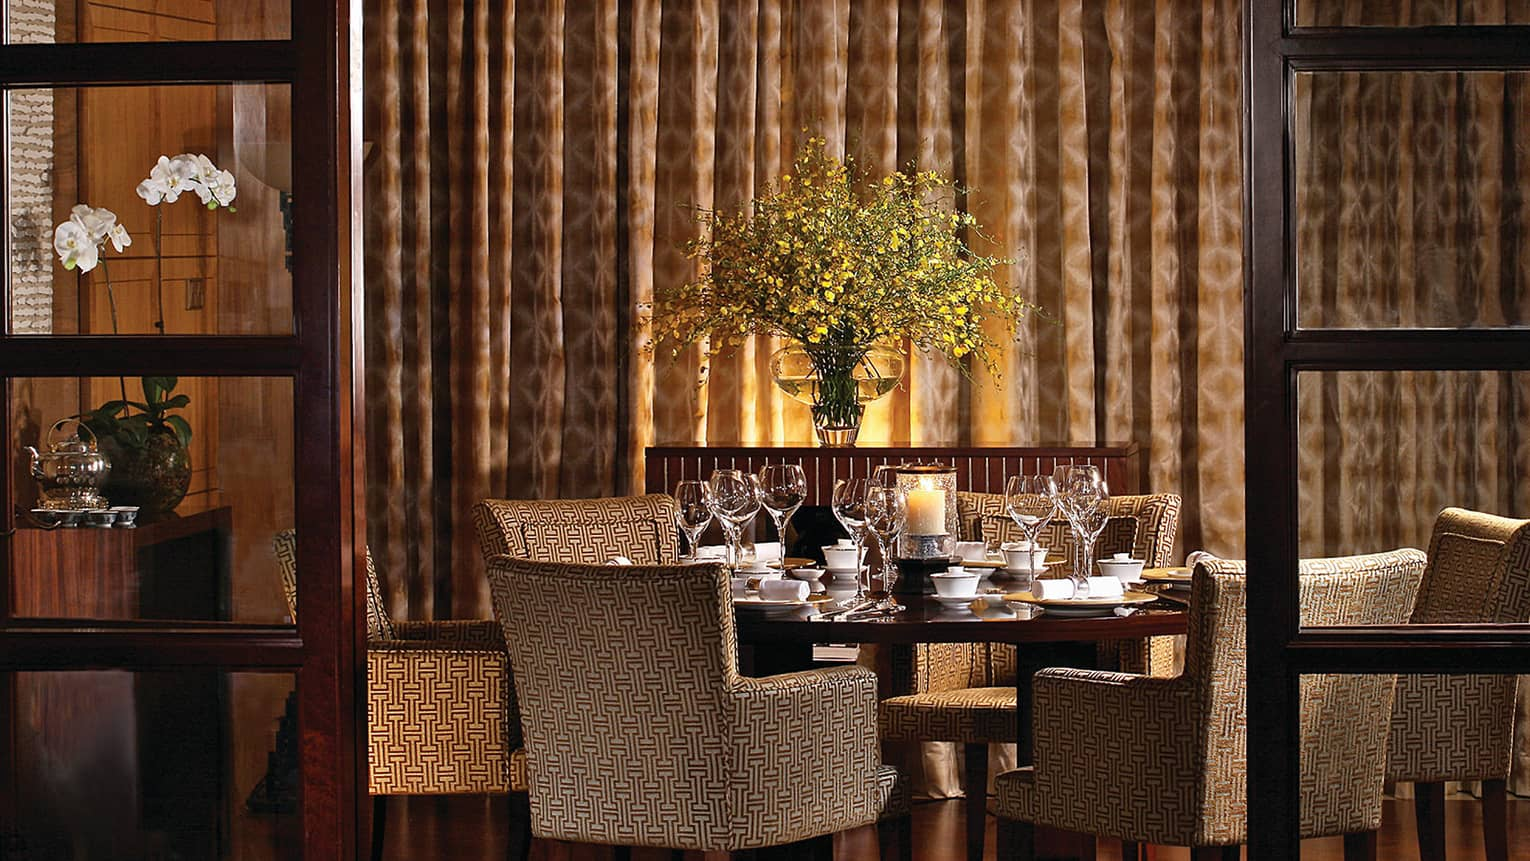 Upholstered dining chairs around wood table in dimly-lit dining area by wall, curtains